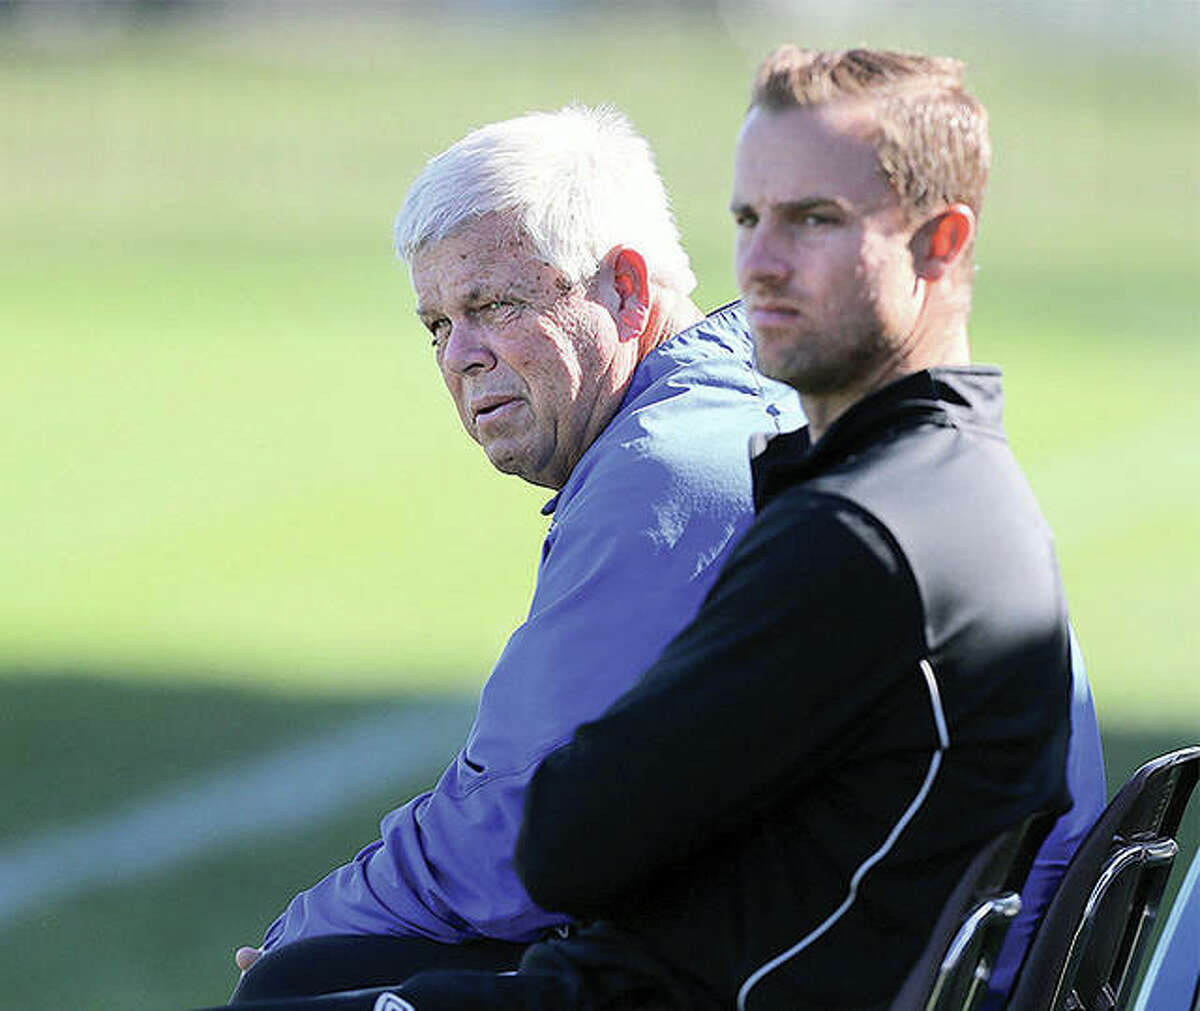 LCCC's women's soccer head coach Tim Rooney, left, and men's coach Ryan Hodge face a lack of games down the stretch as their teams prepare for the postseason following an abbreviated and transplanted-from-fall regular season. Both teams have had multiple games cancelled by opposing teams.